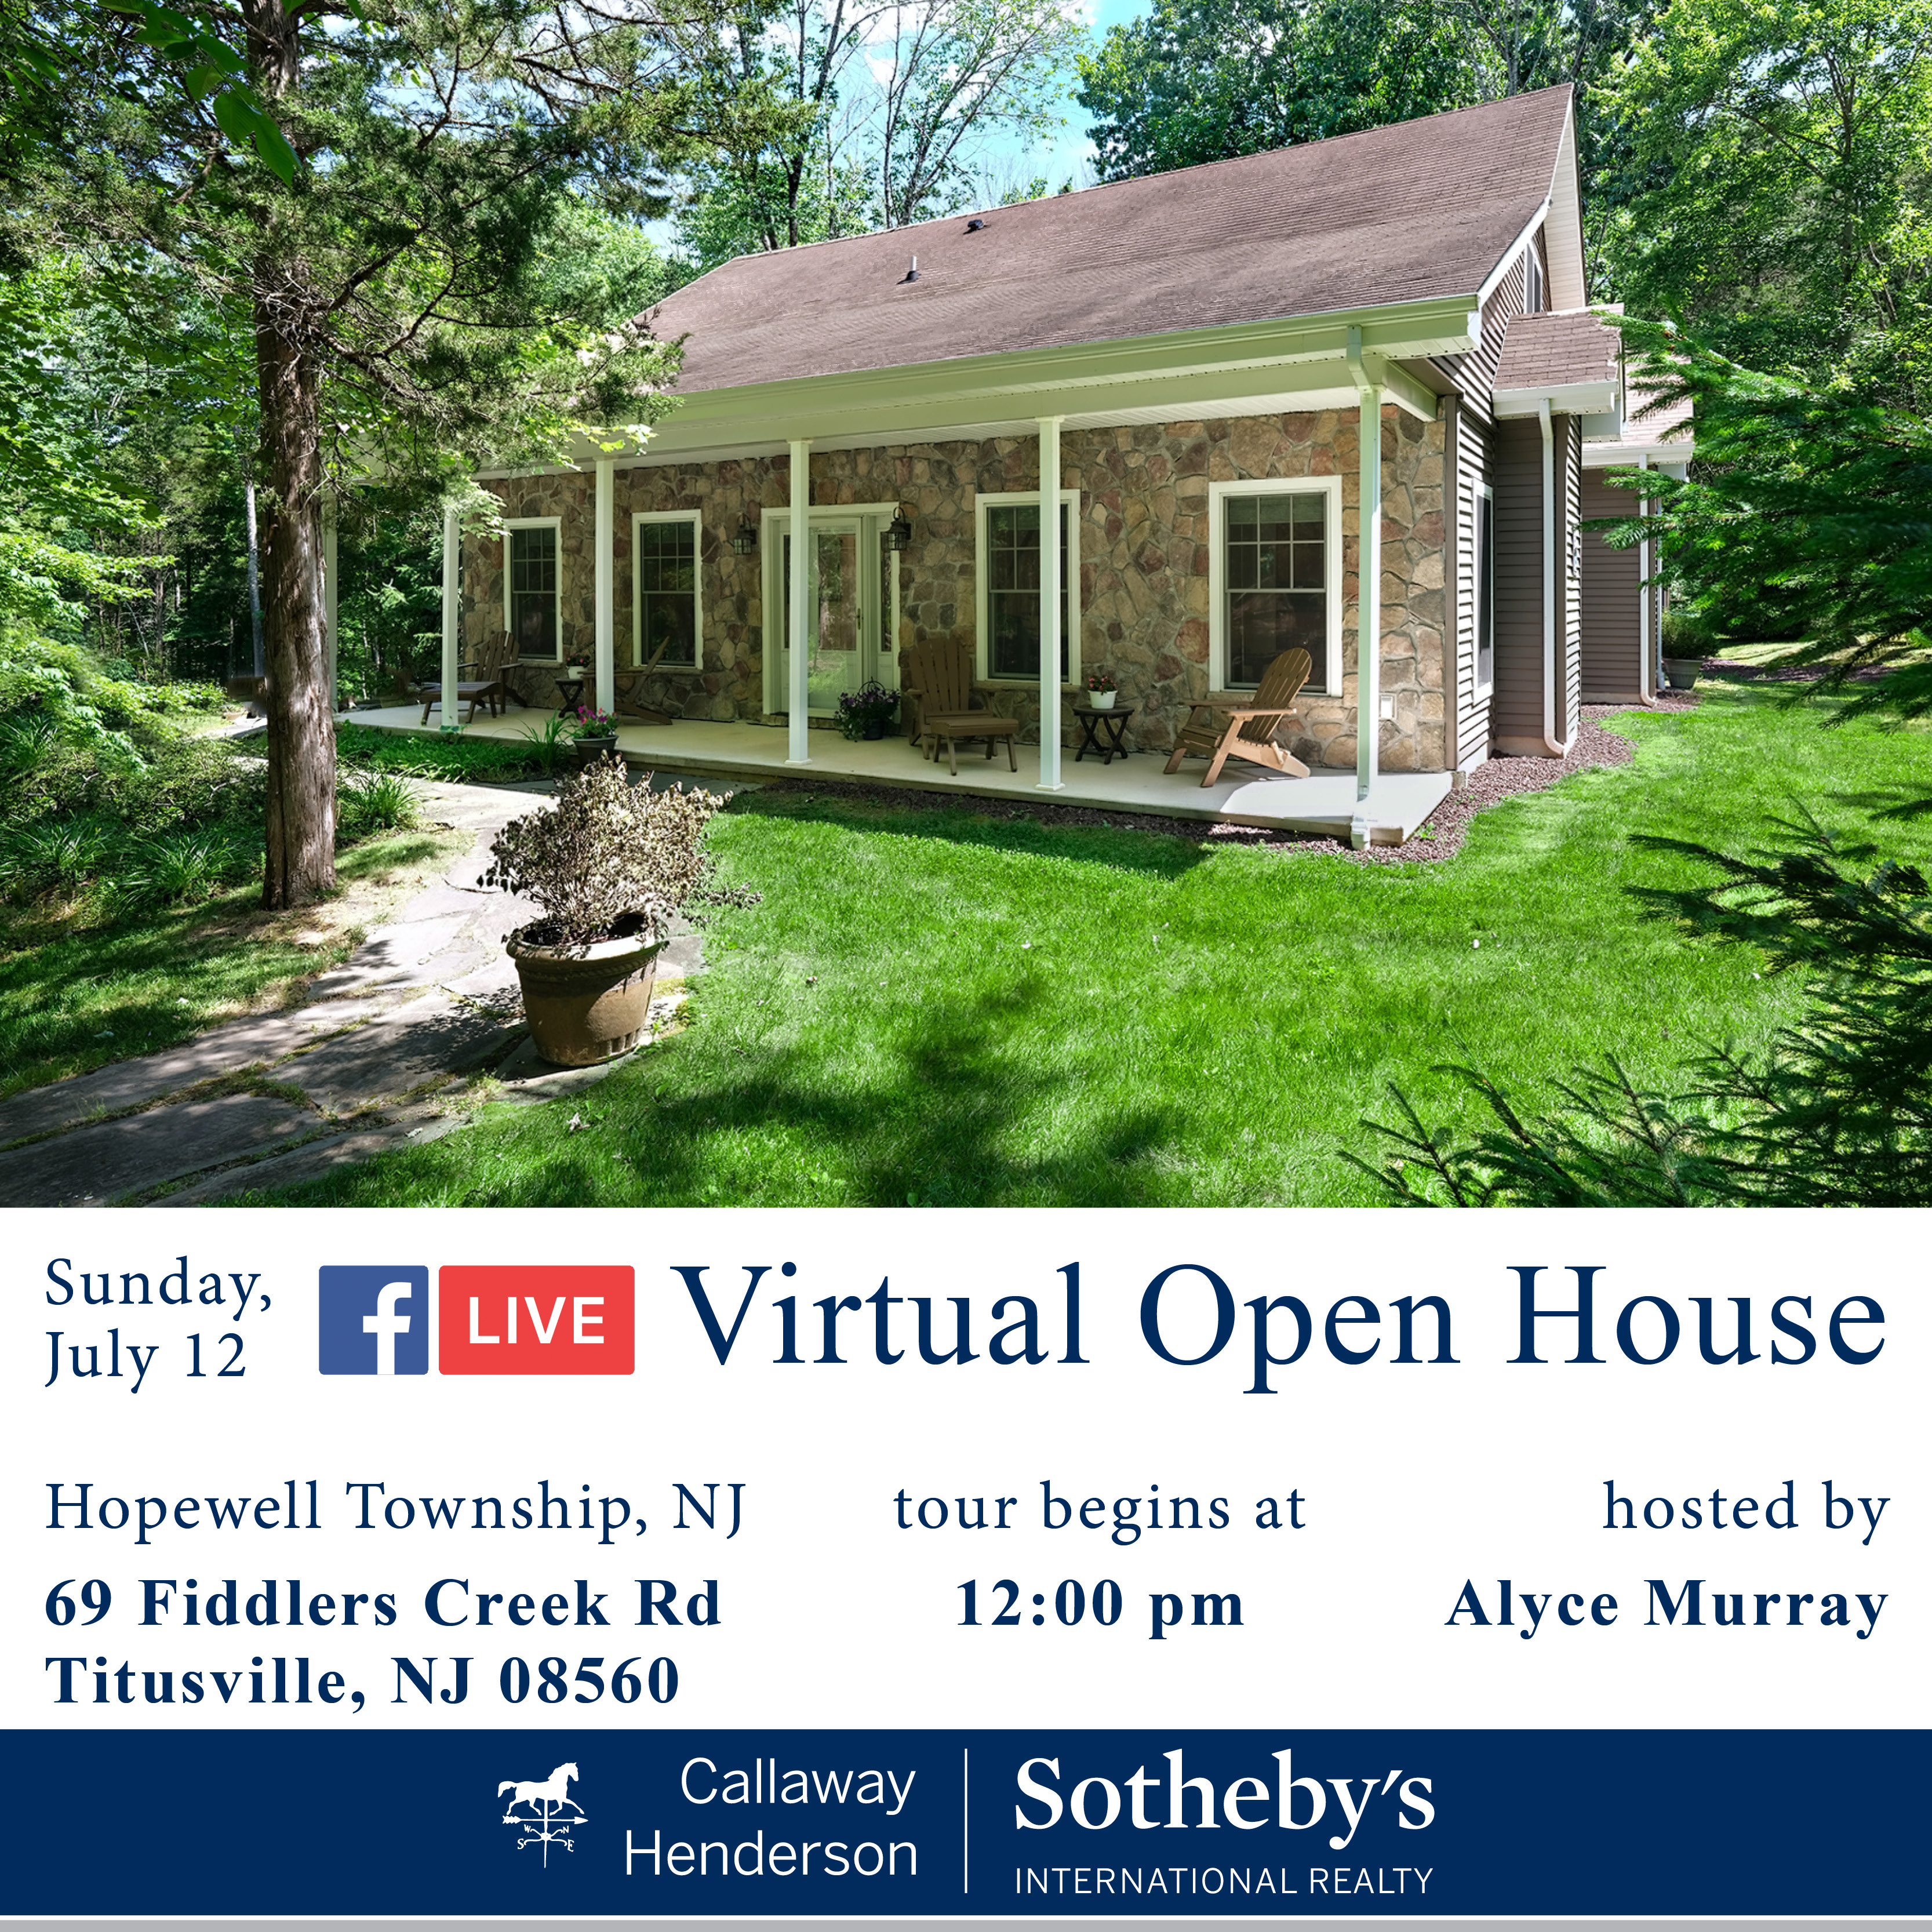 071220 Live Virtual Open House Template-Fiddlers Creek Road 69